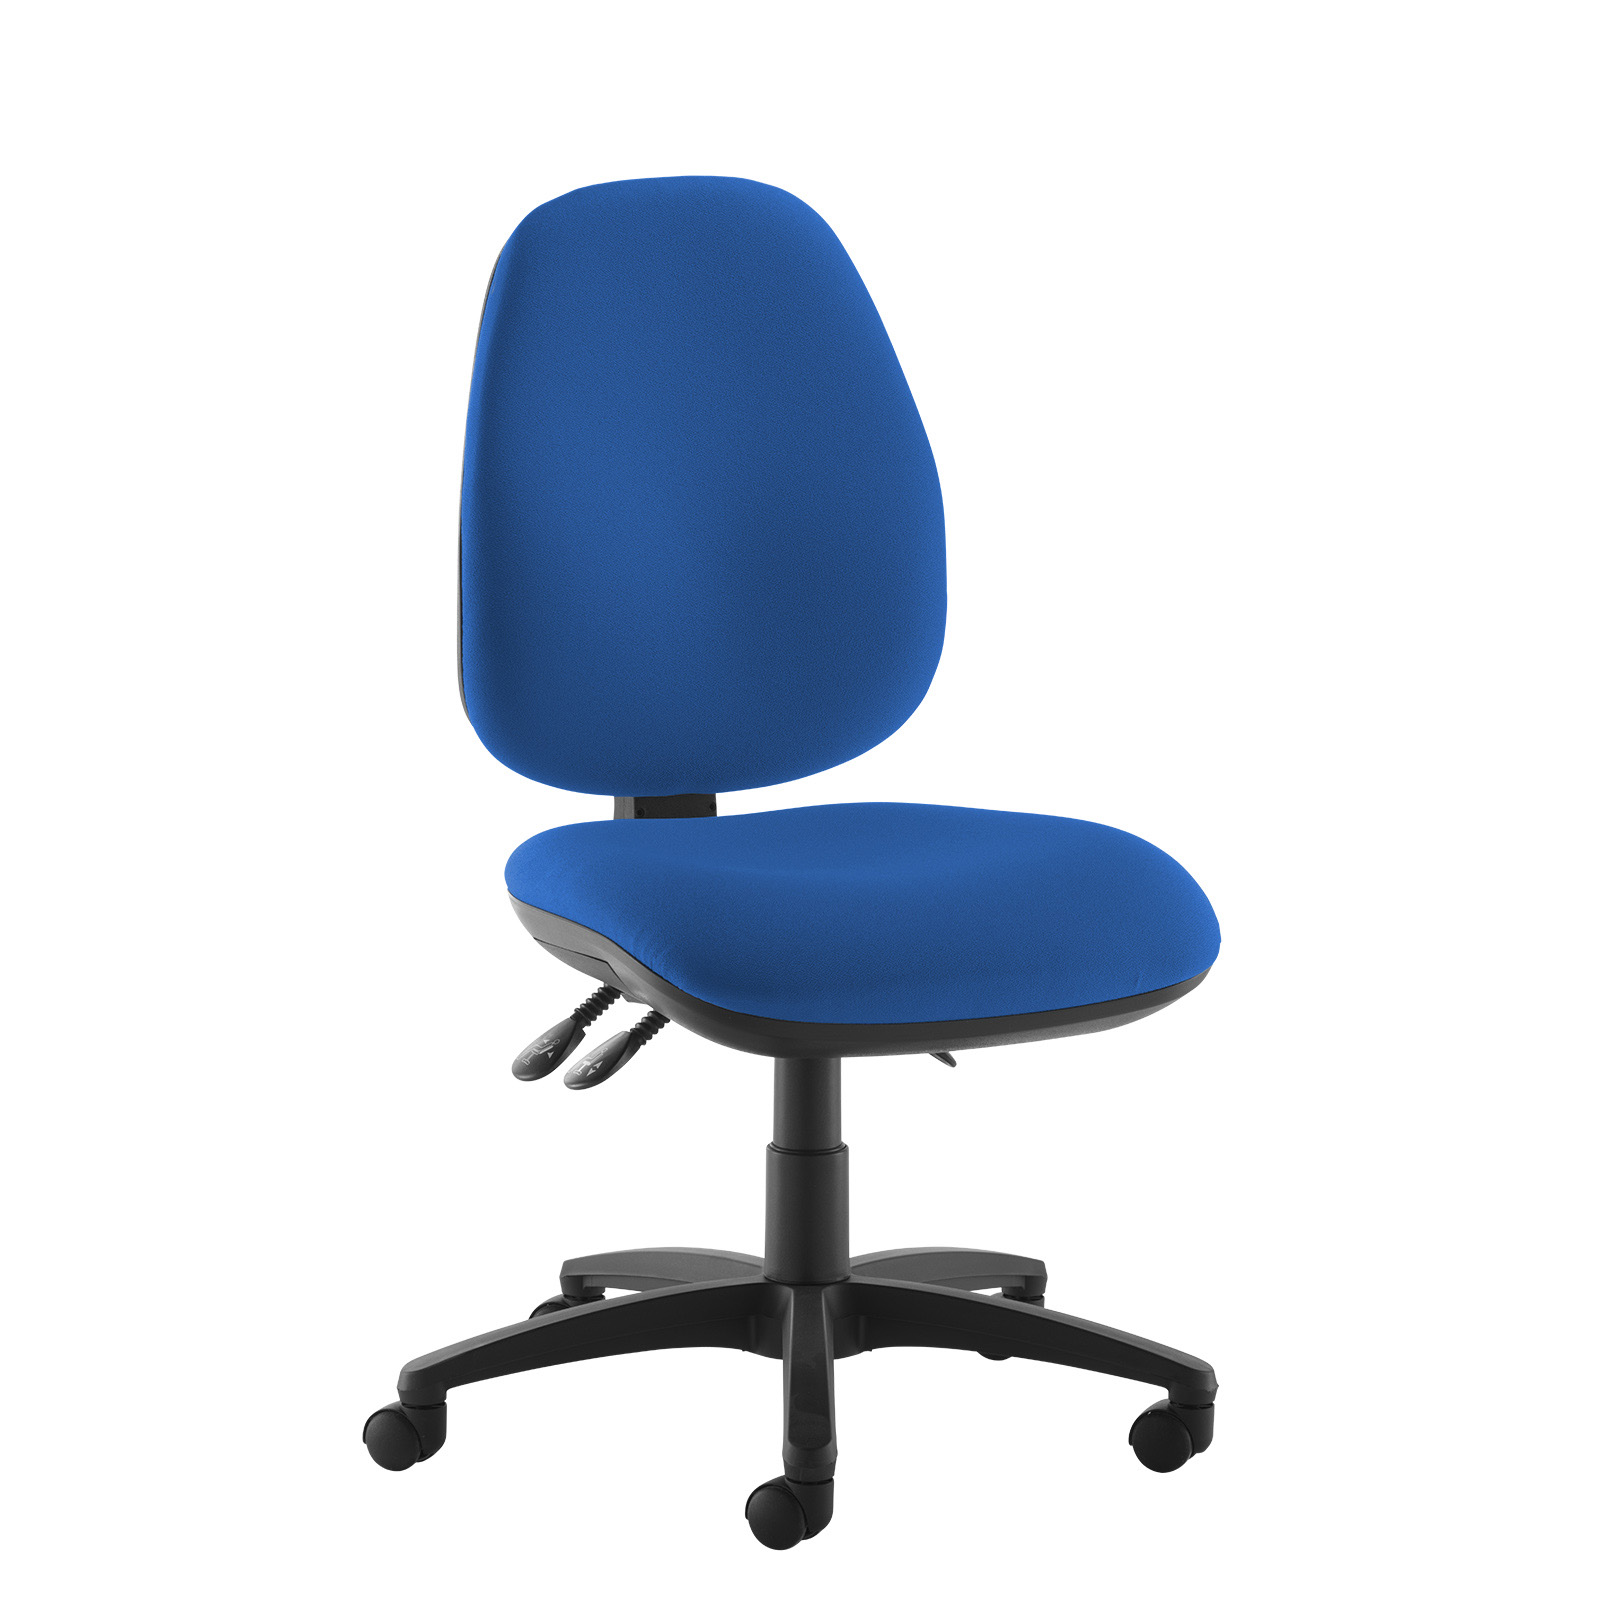 Desk Chairs Jota high back operator chair with no arms - blue